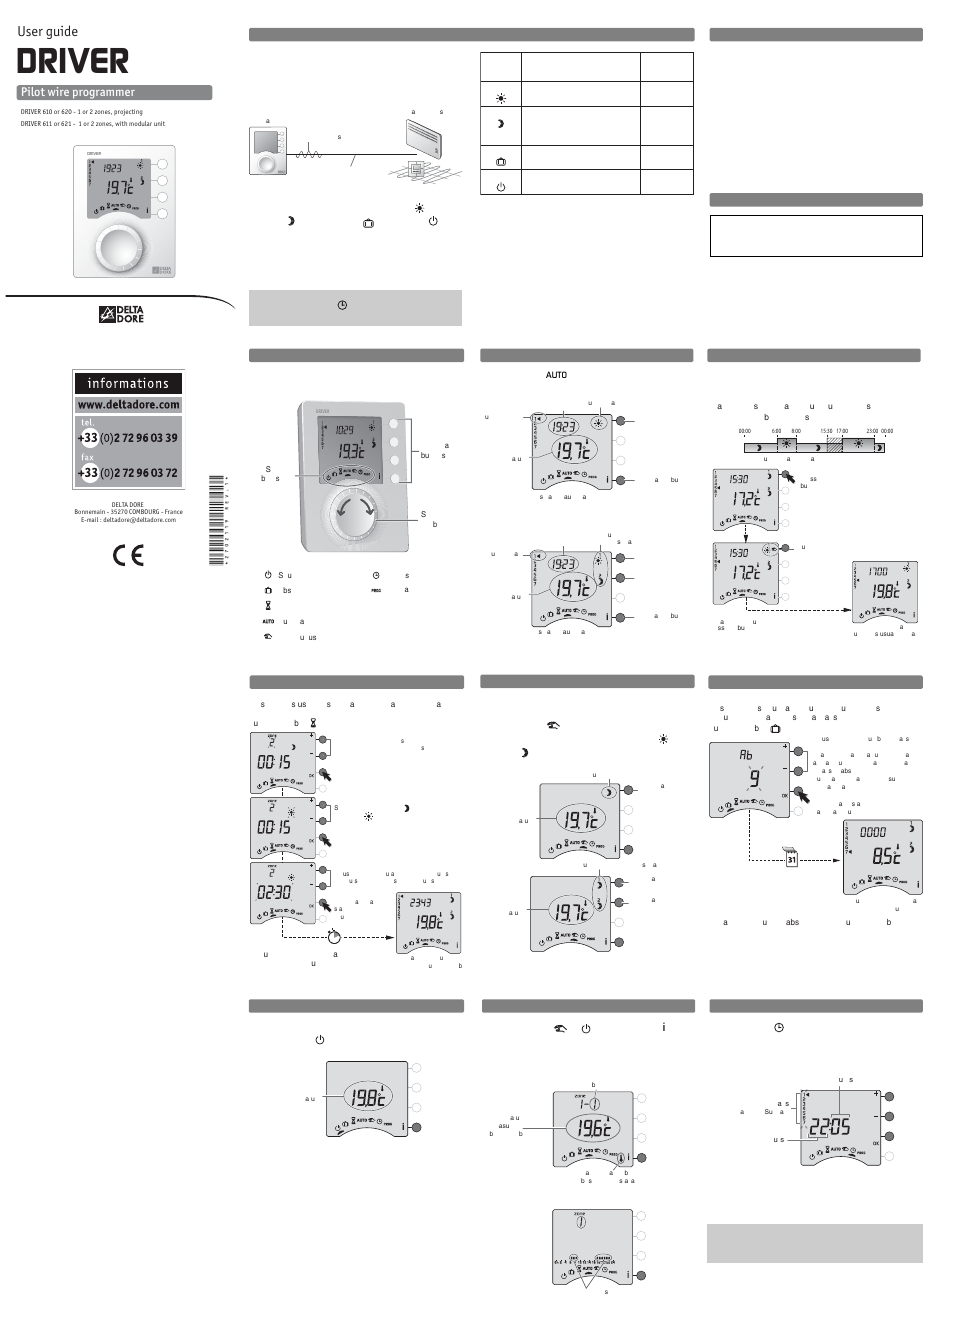 delta dore 620 driver user manual 2 pages